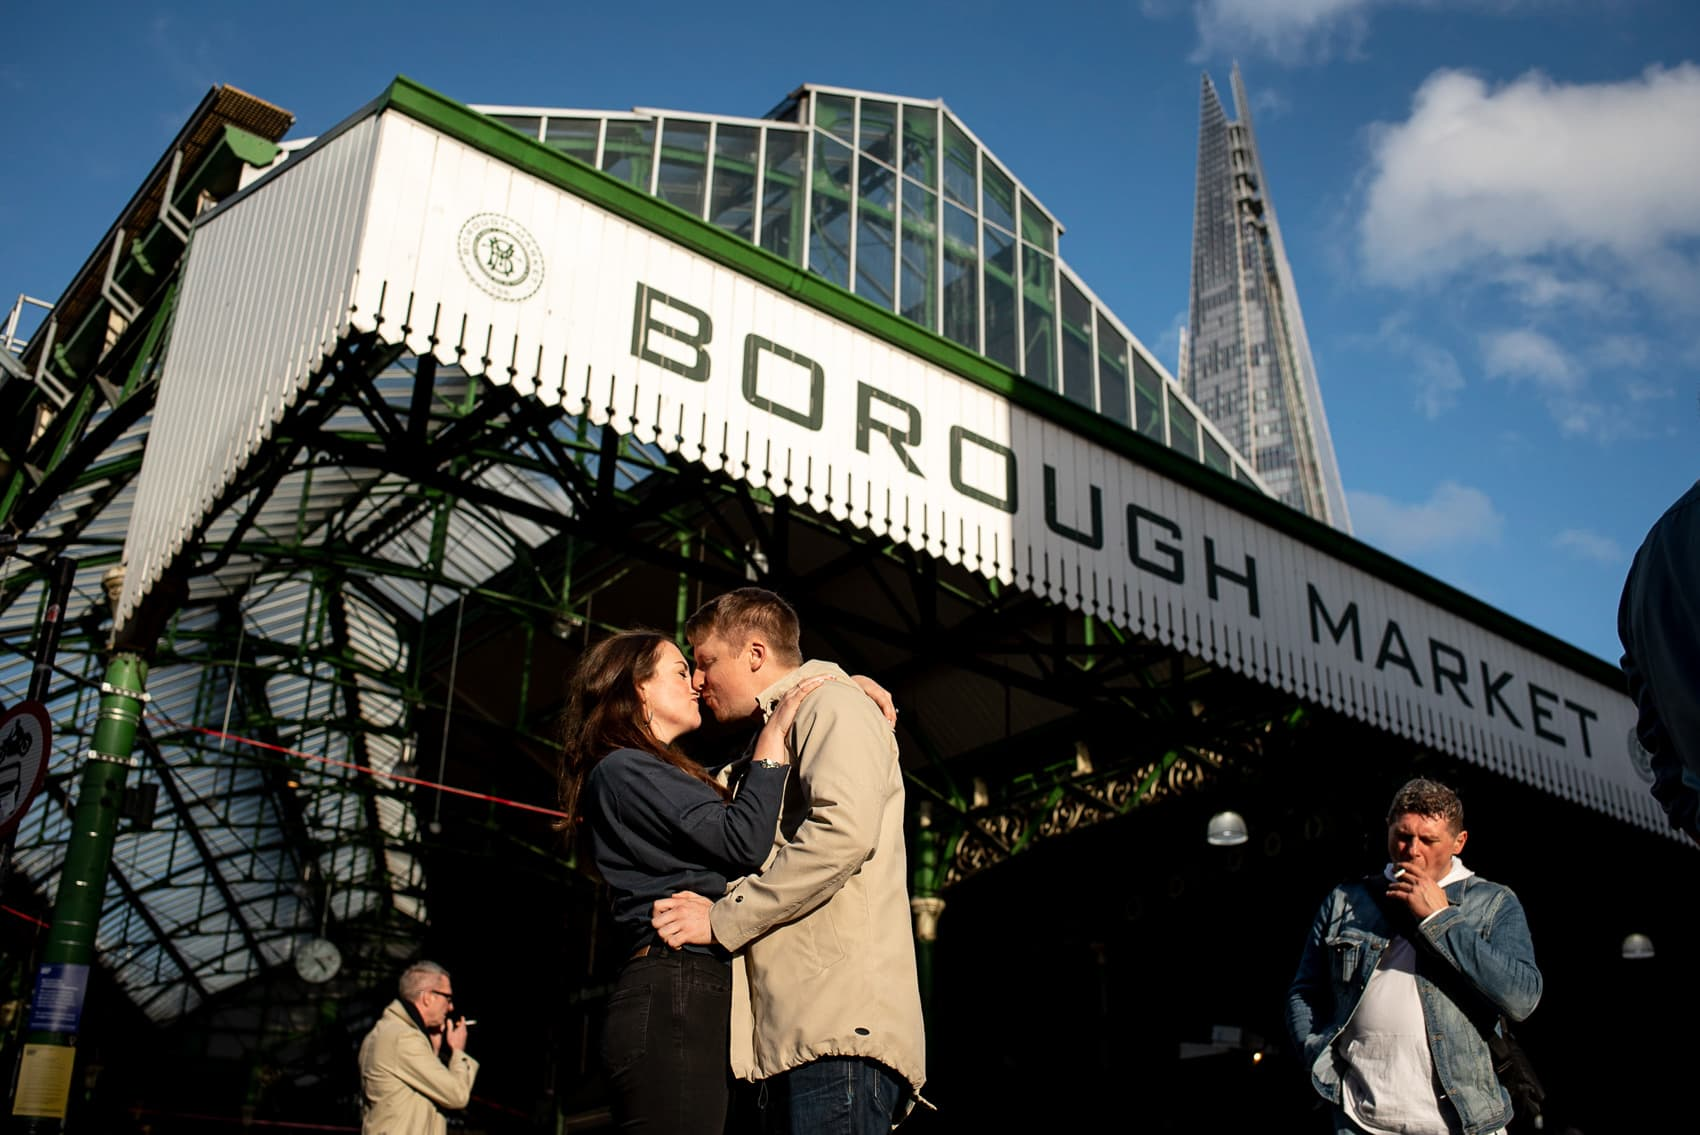 Street photography photo of couple kissing in front of Borough Market sign and the Shard with blue sky